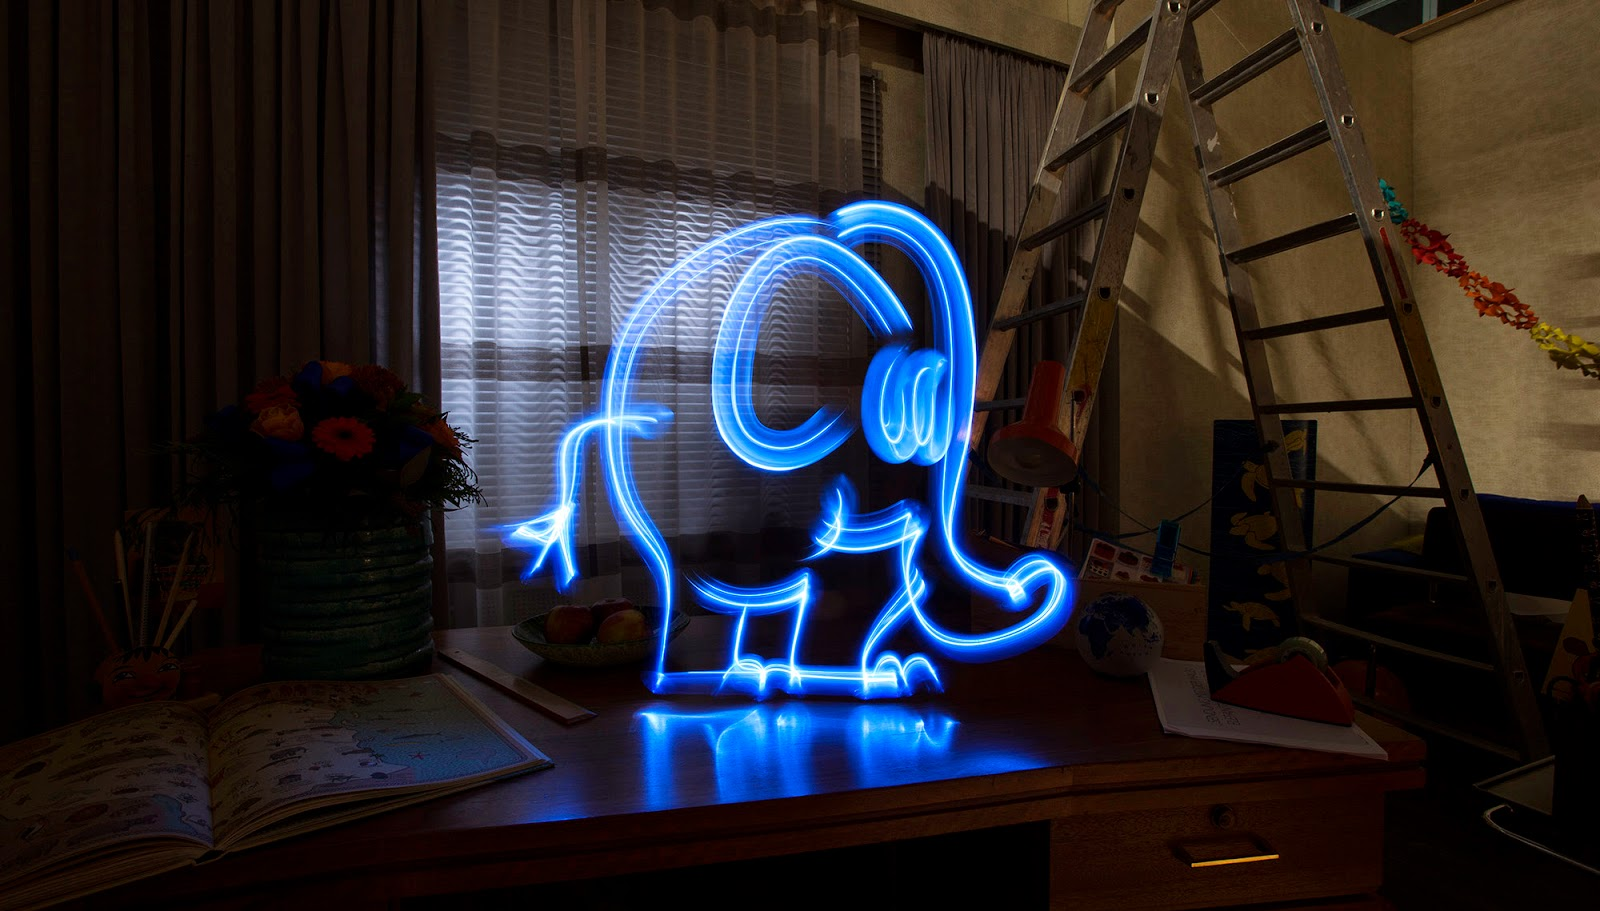 Lichtfaktor, light painting, kleiner blauer elefant